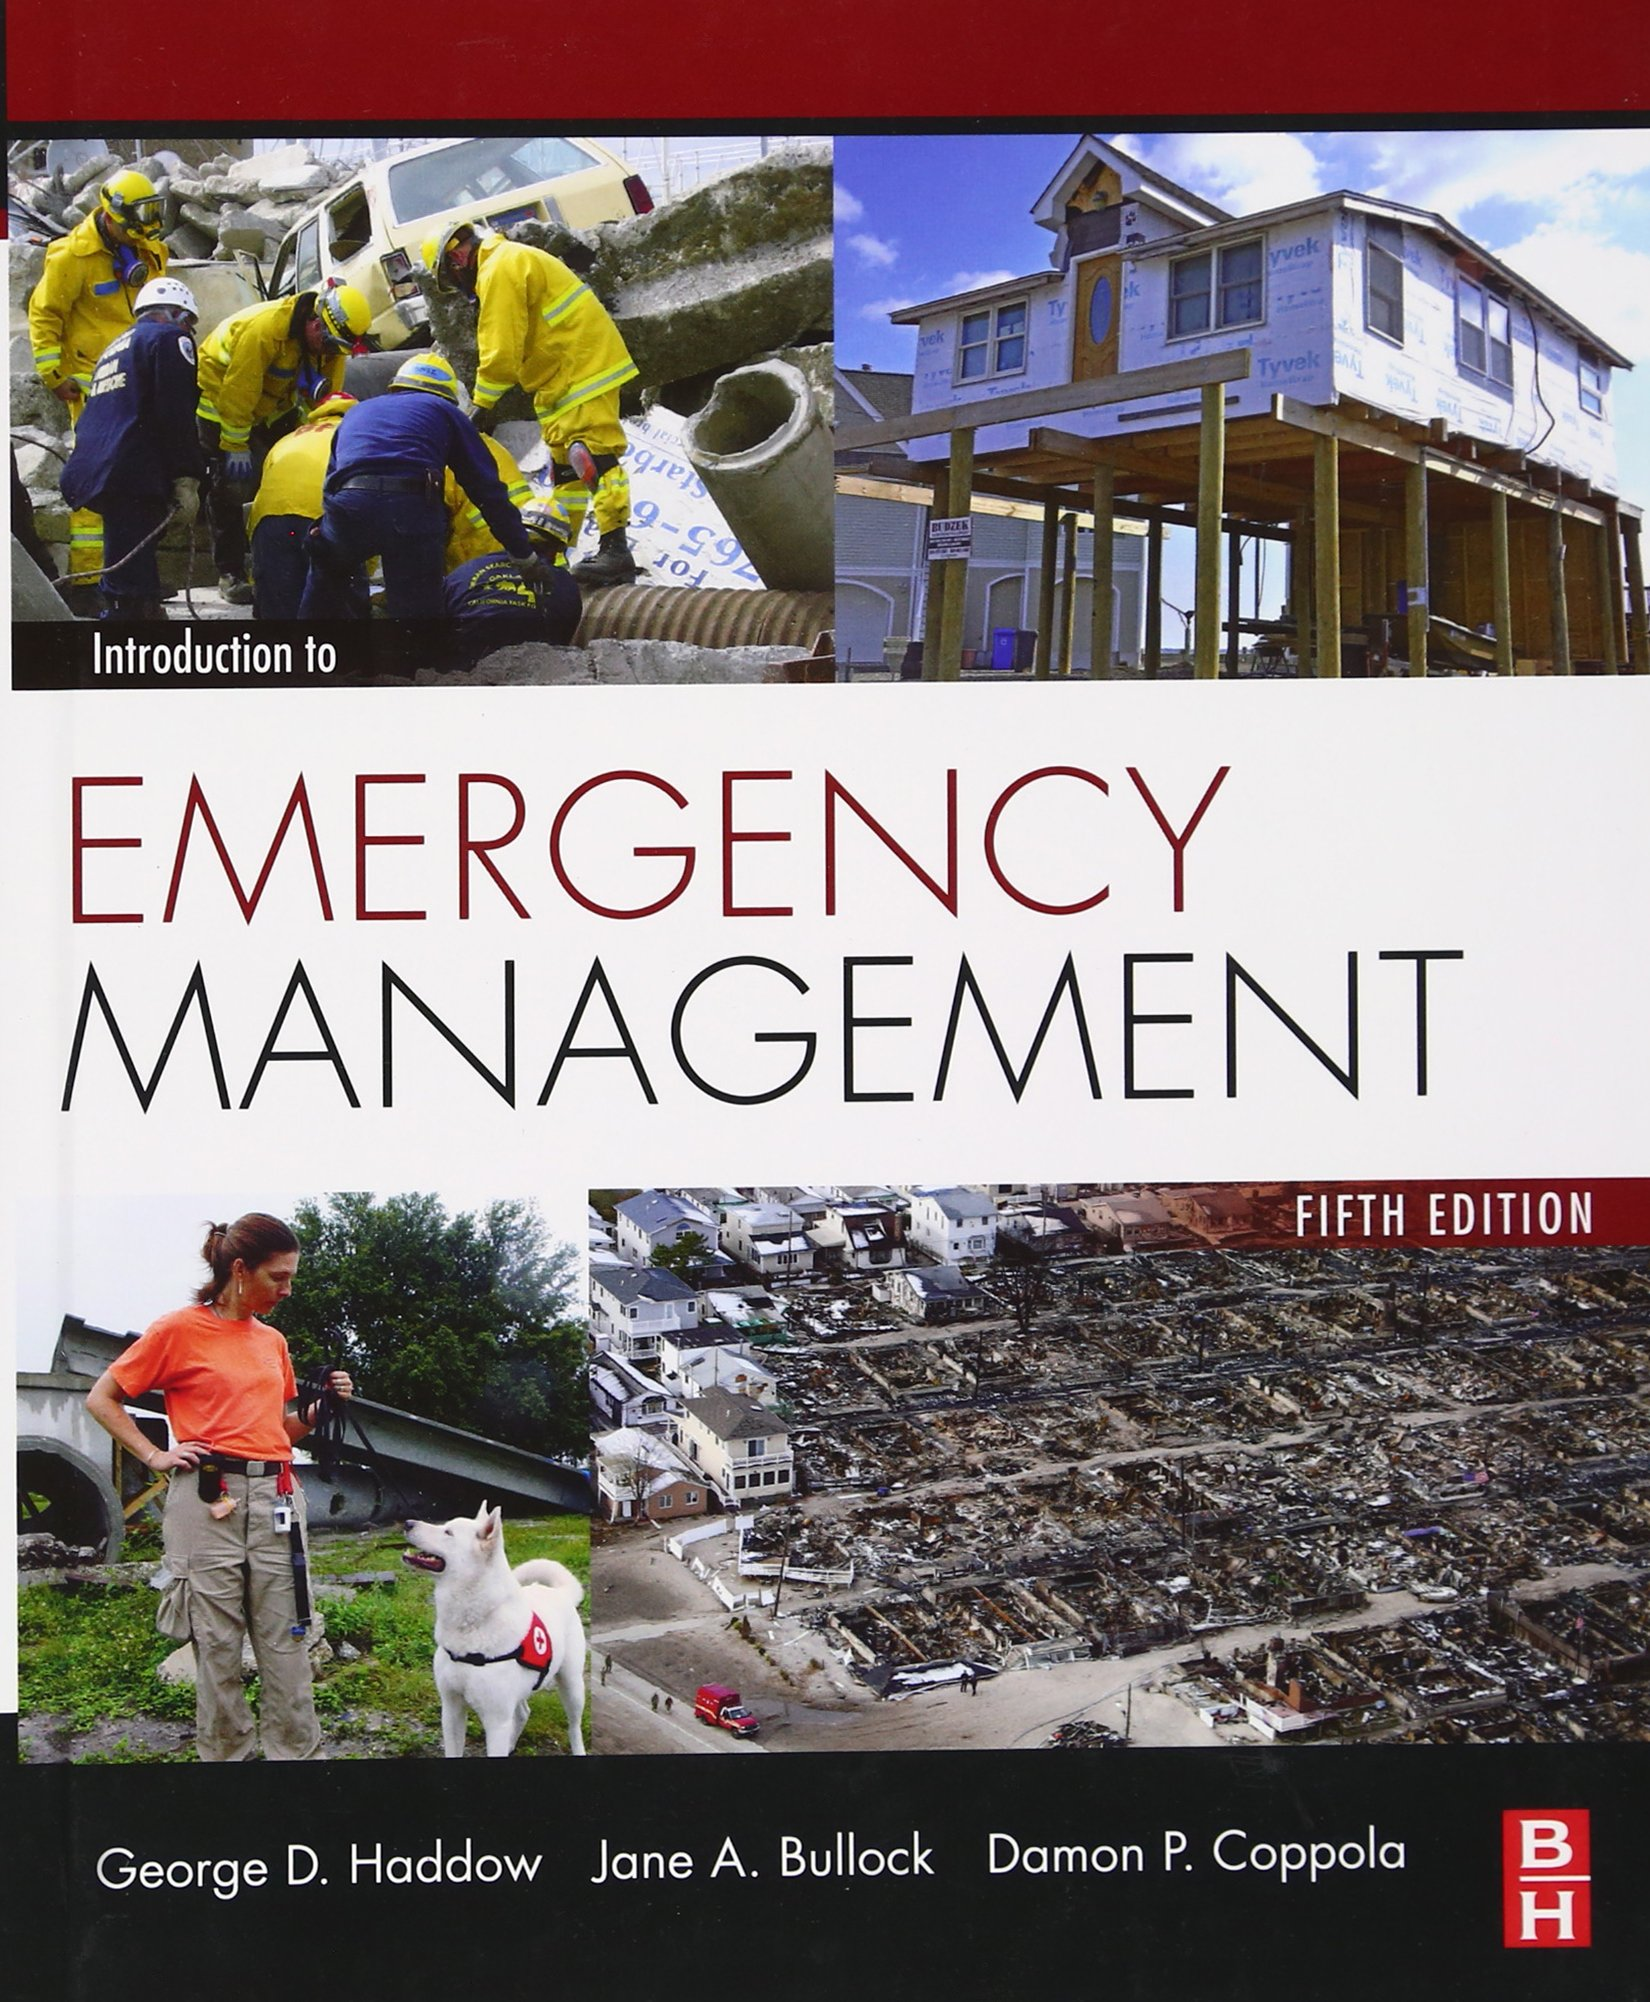 Introduction to Emergency Management, Fifth Edition by Haddow George (Image #1)